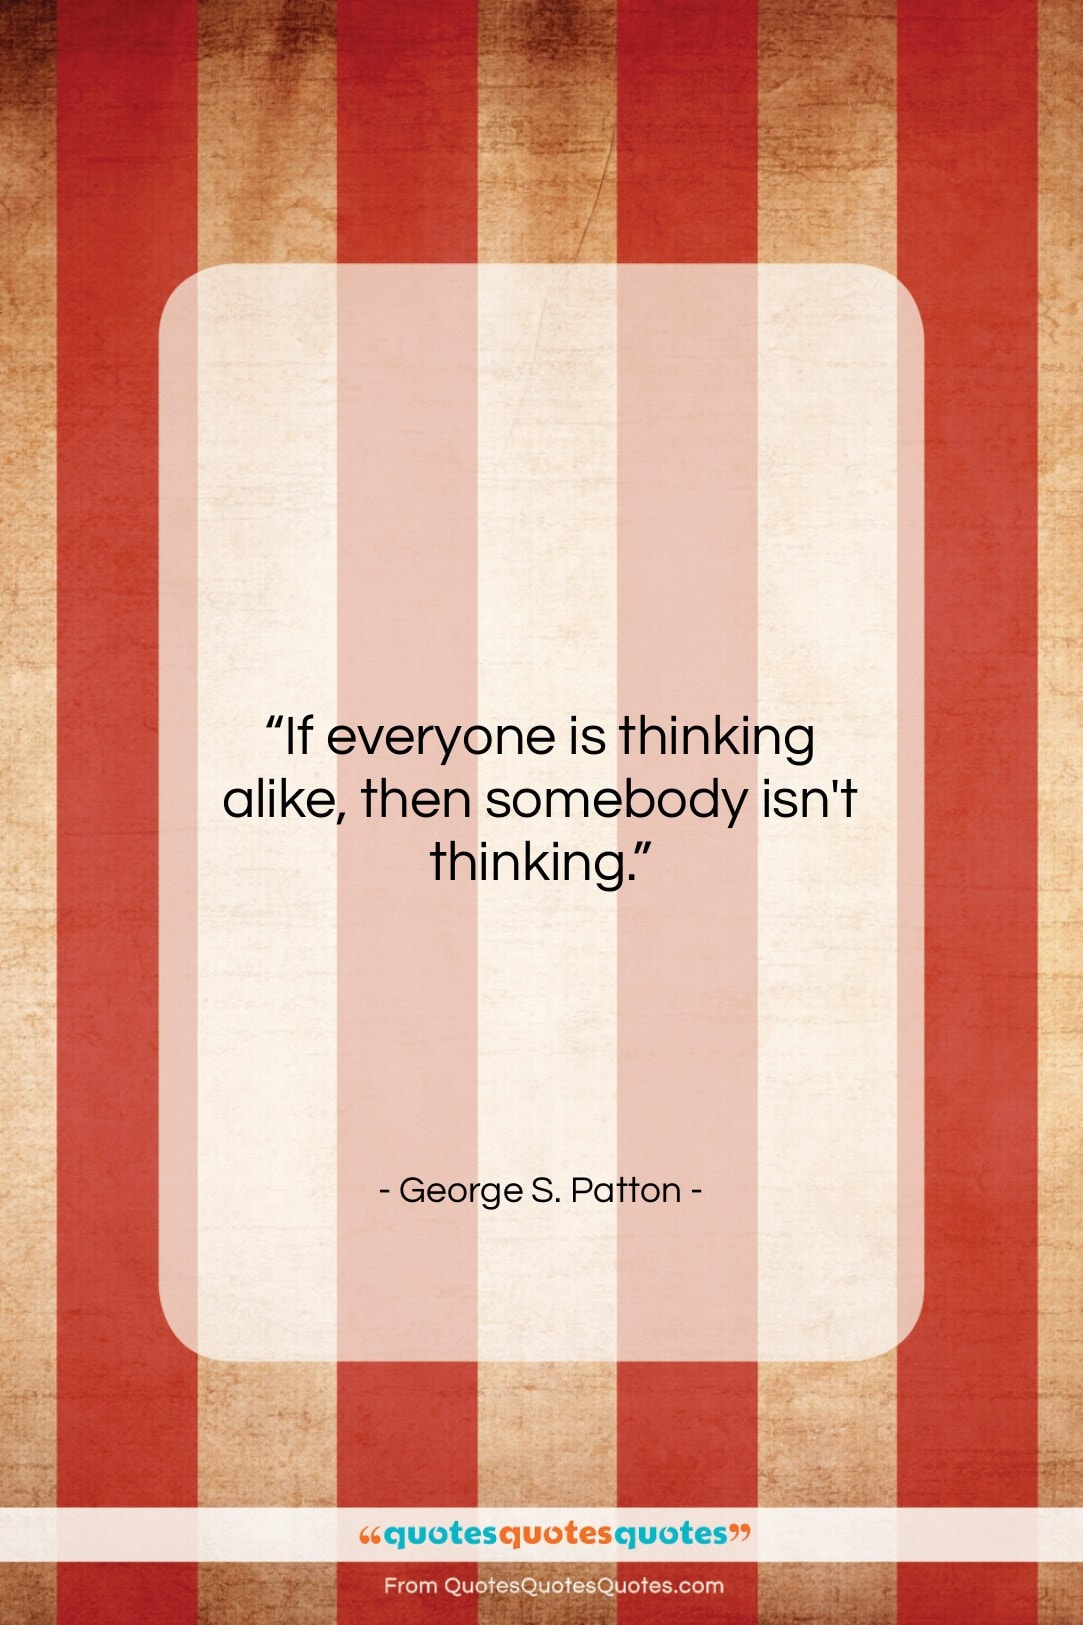 Get The Whole George S Patton Quote If Everyone Is Thinking Alike